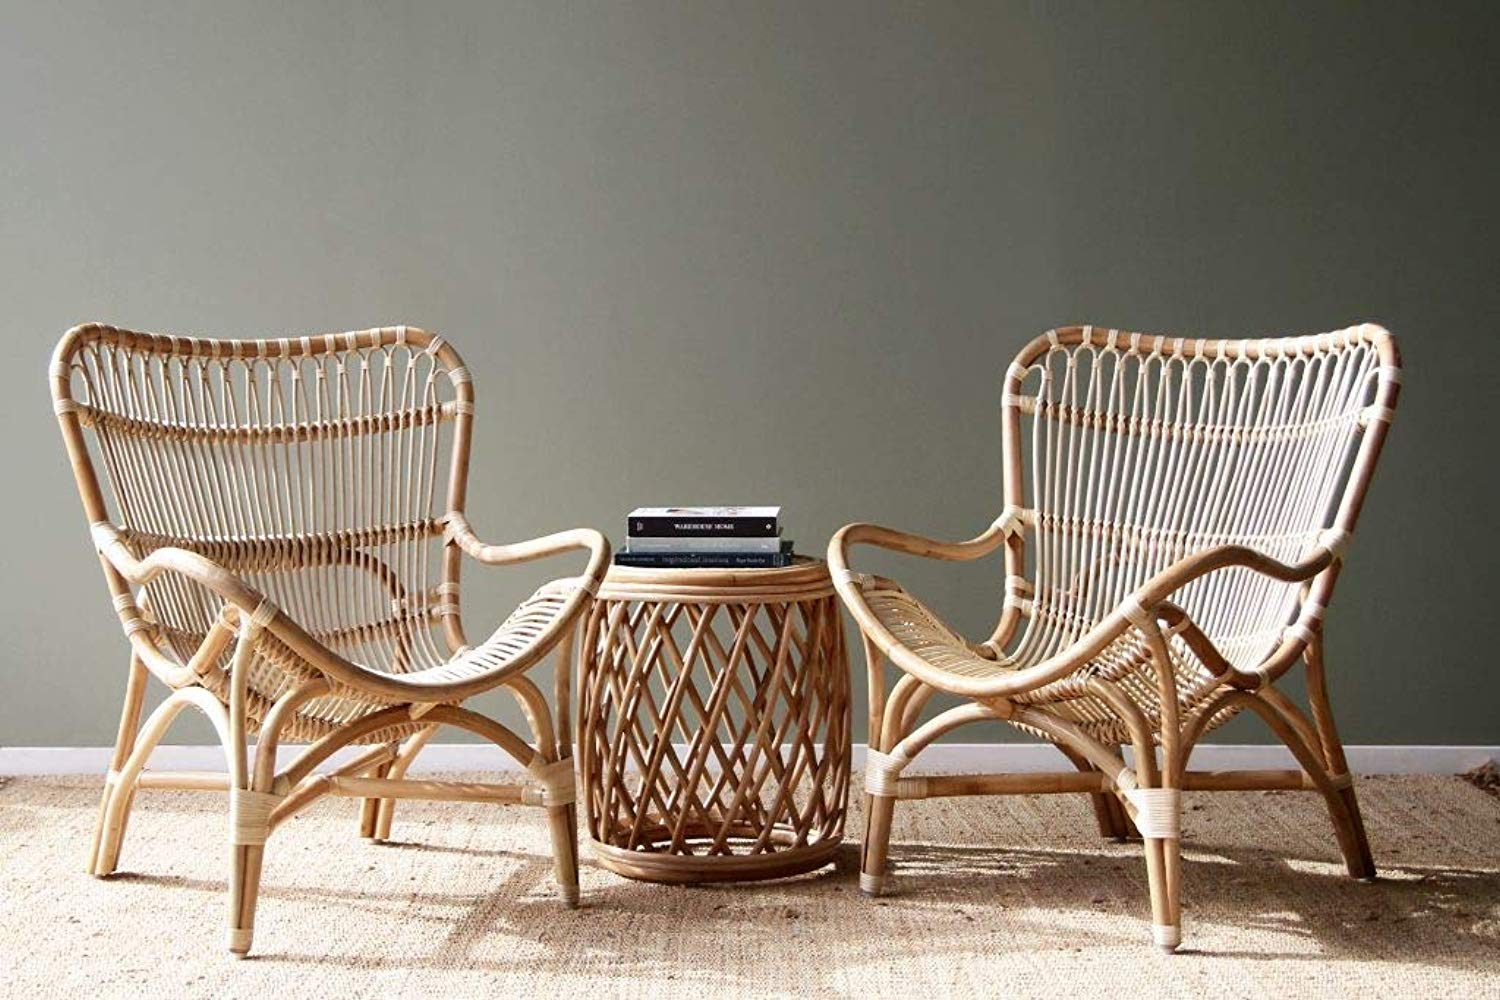 IRA Natural Armchair Chairs - IRA Furniture